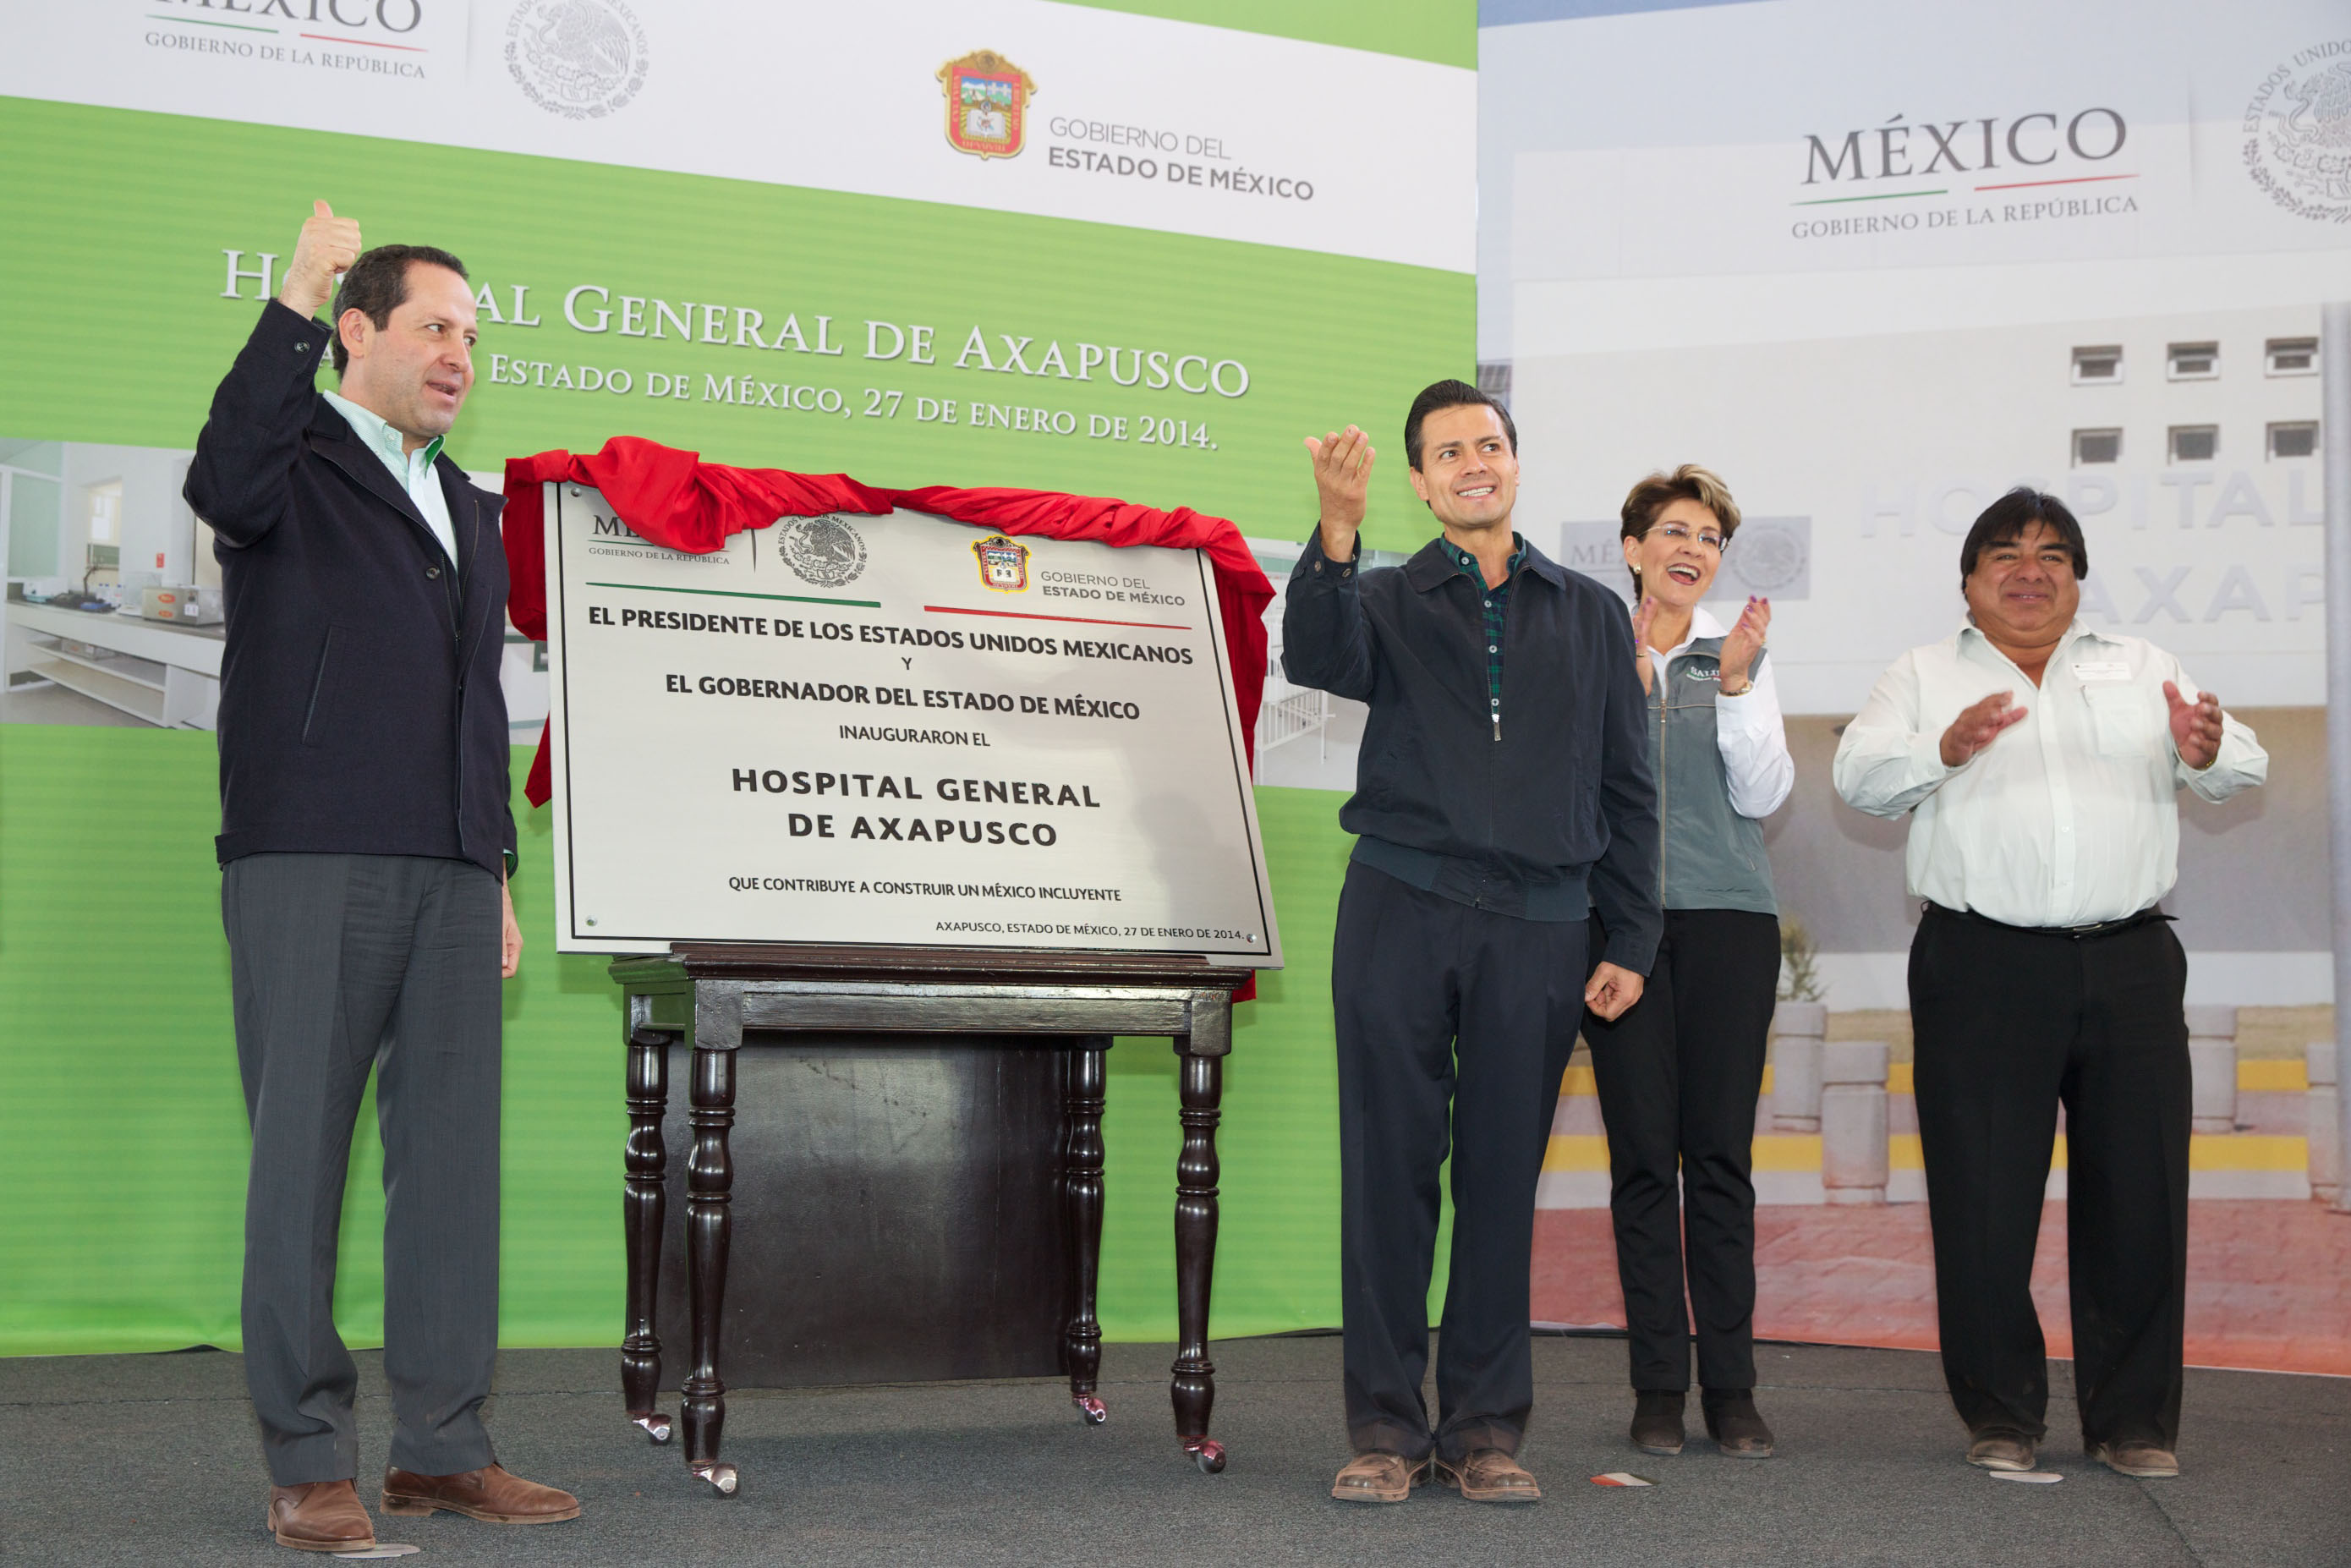 Inauguracin del hospital general de axapusco estado de mxico 12181277244 o